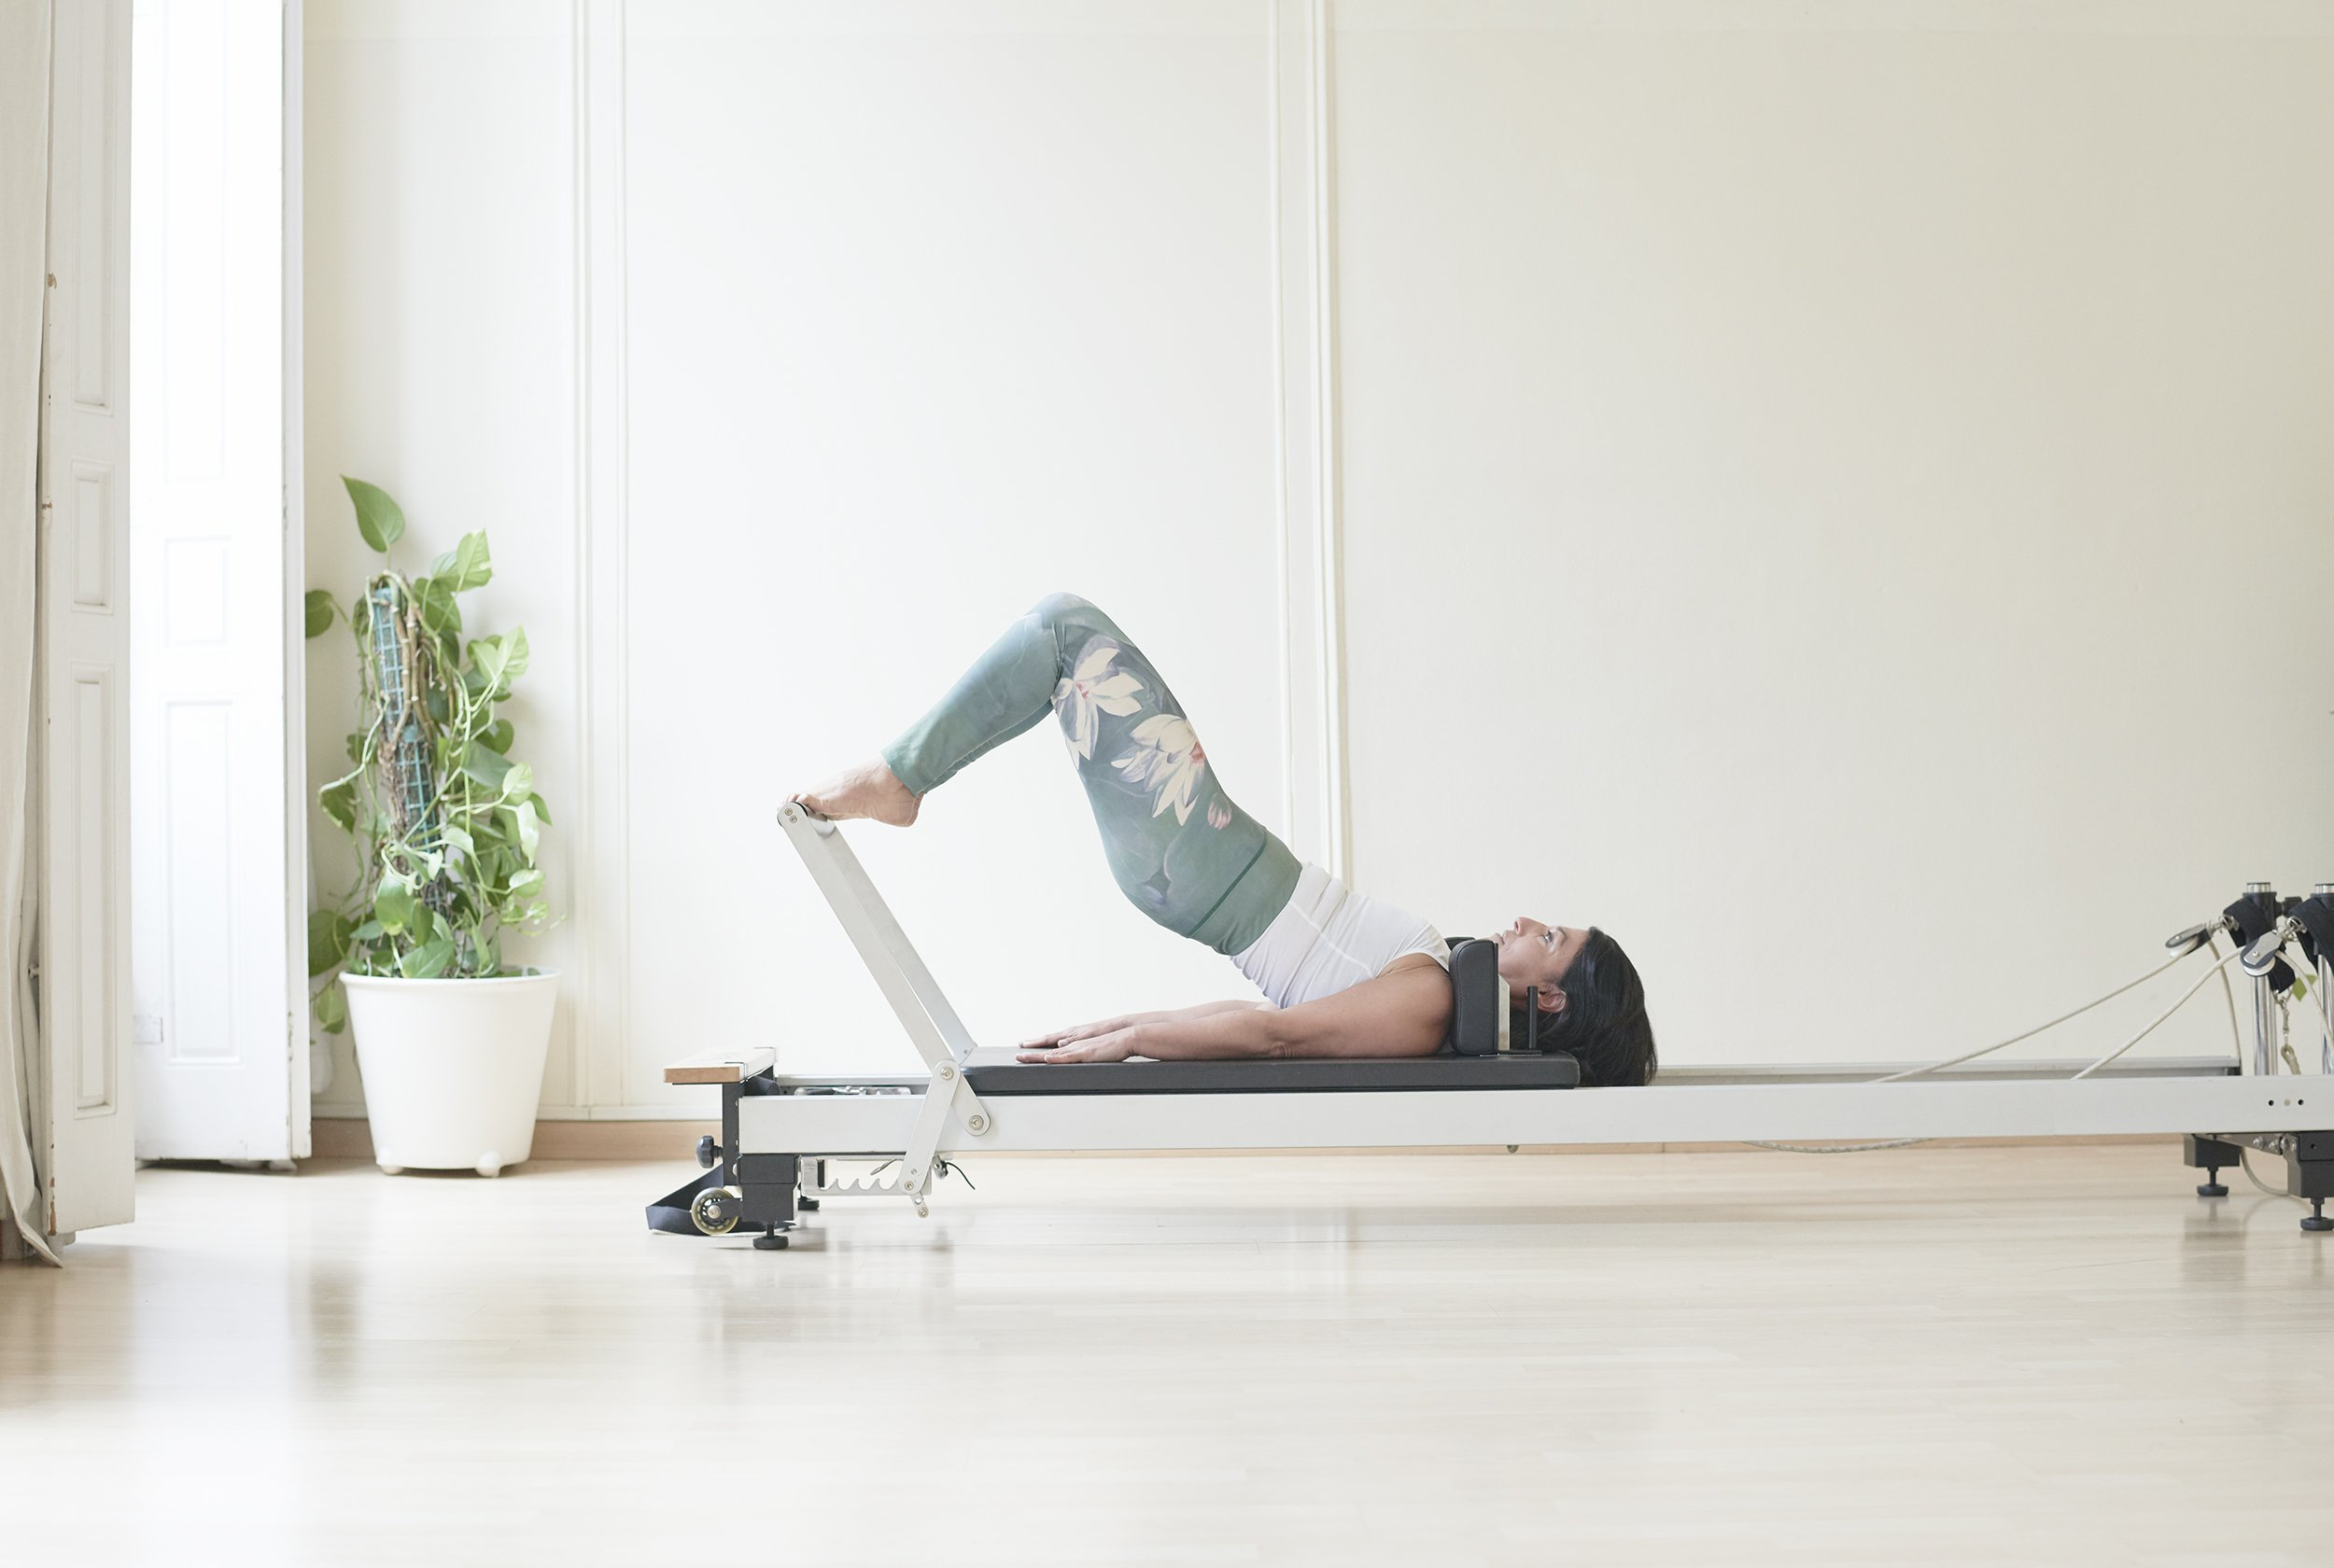 Benefits of pilates reformer